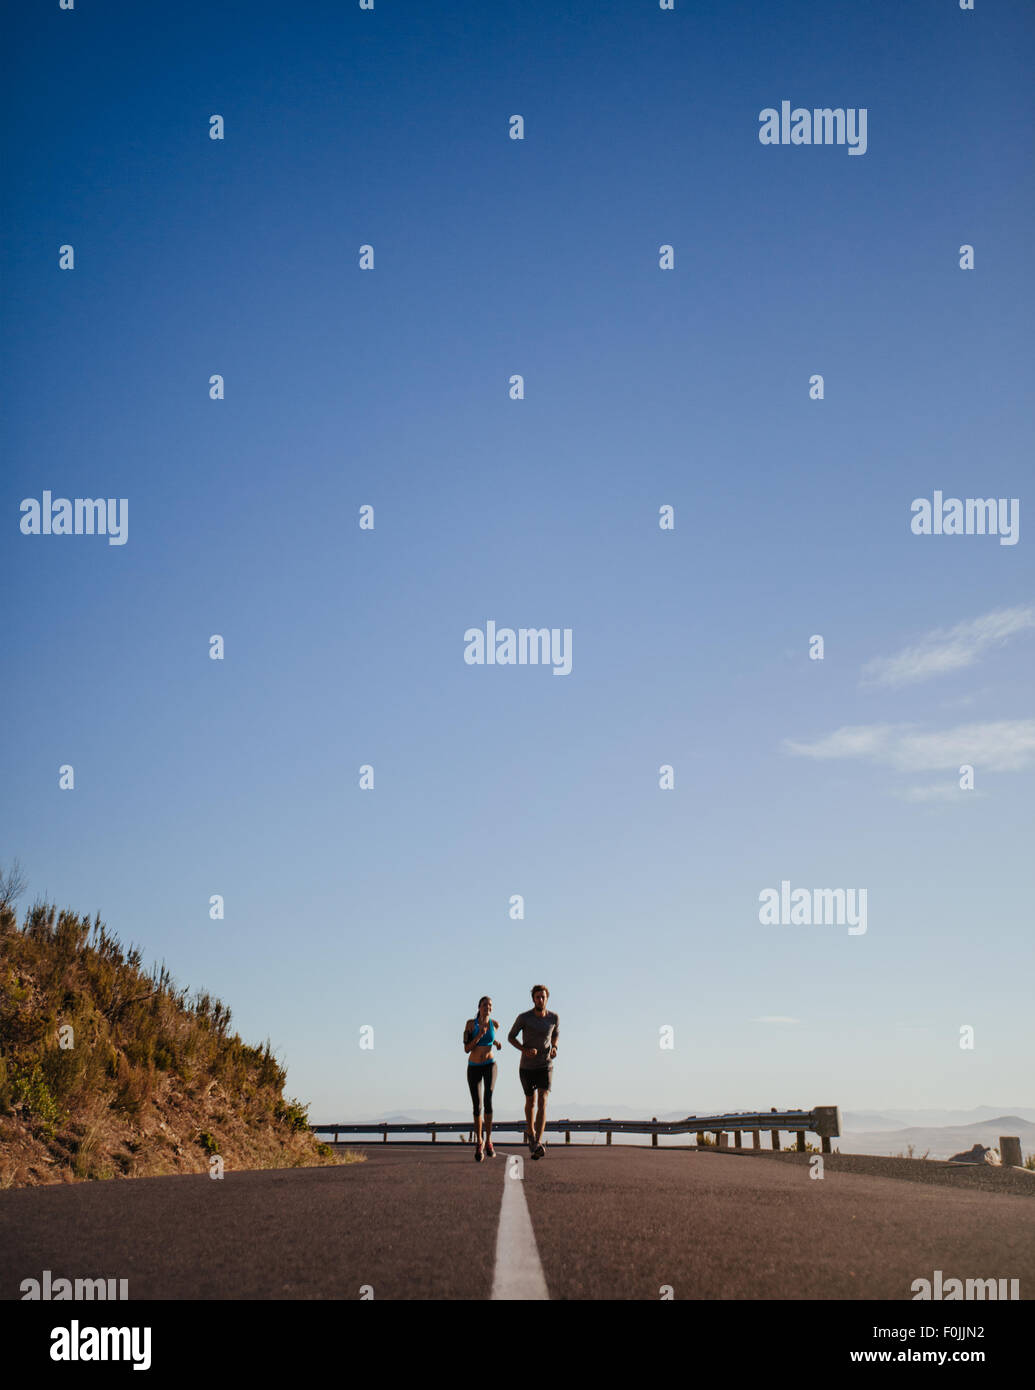 Distant shot of two young runners running on open country road with blue sky. Two young man and woman jogging outdoors - Stock Image